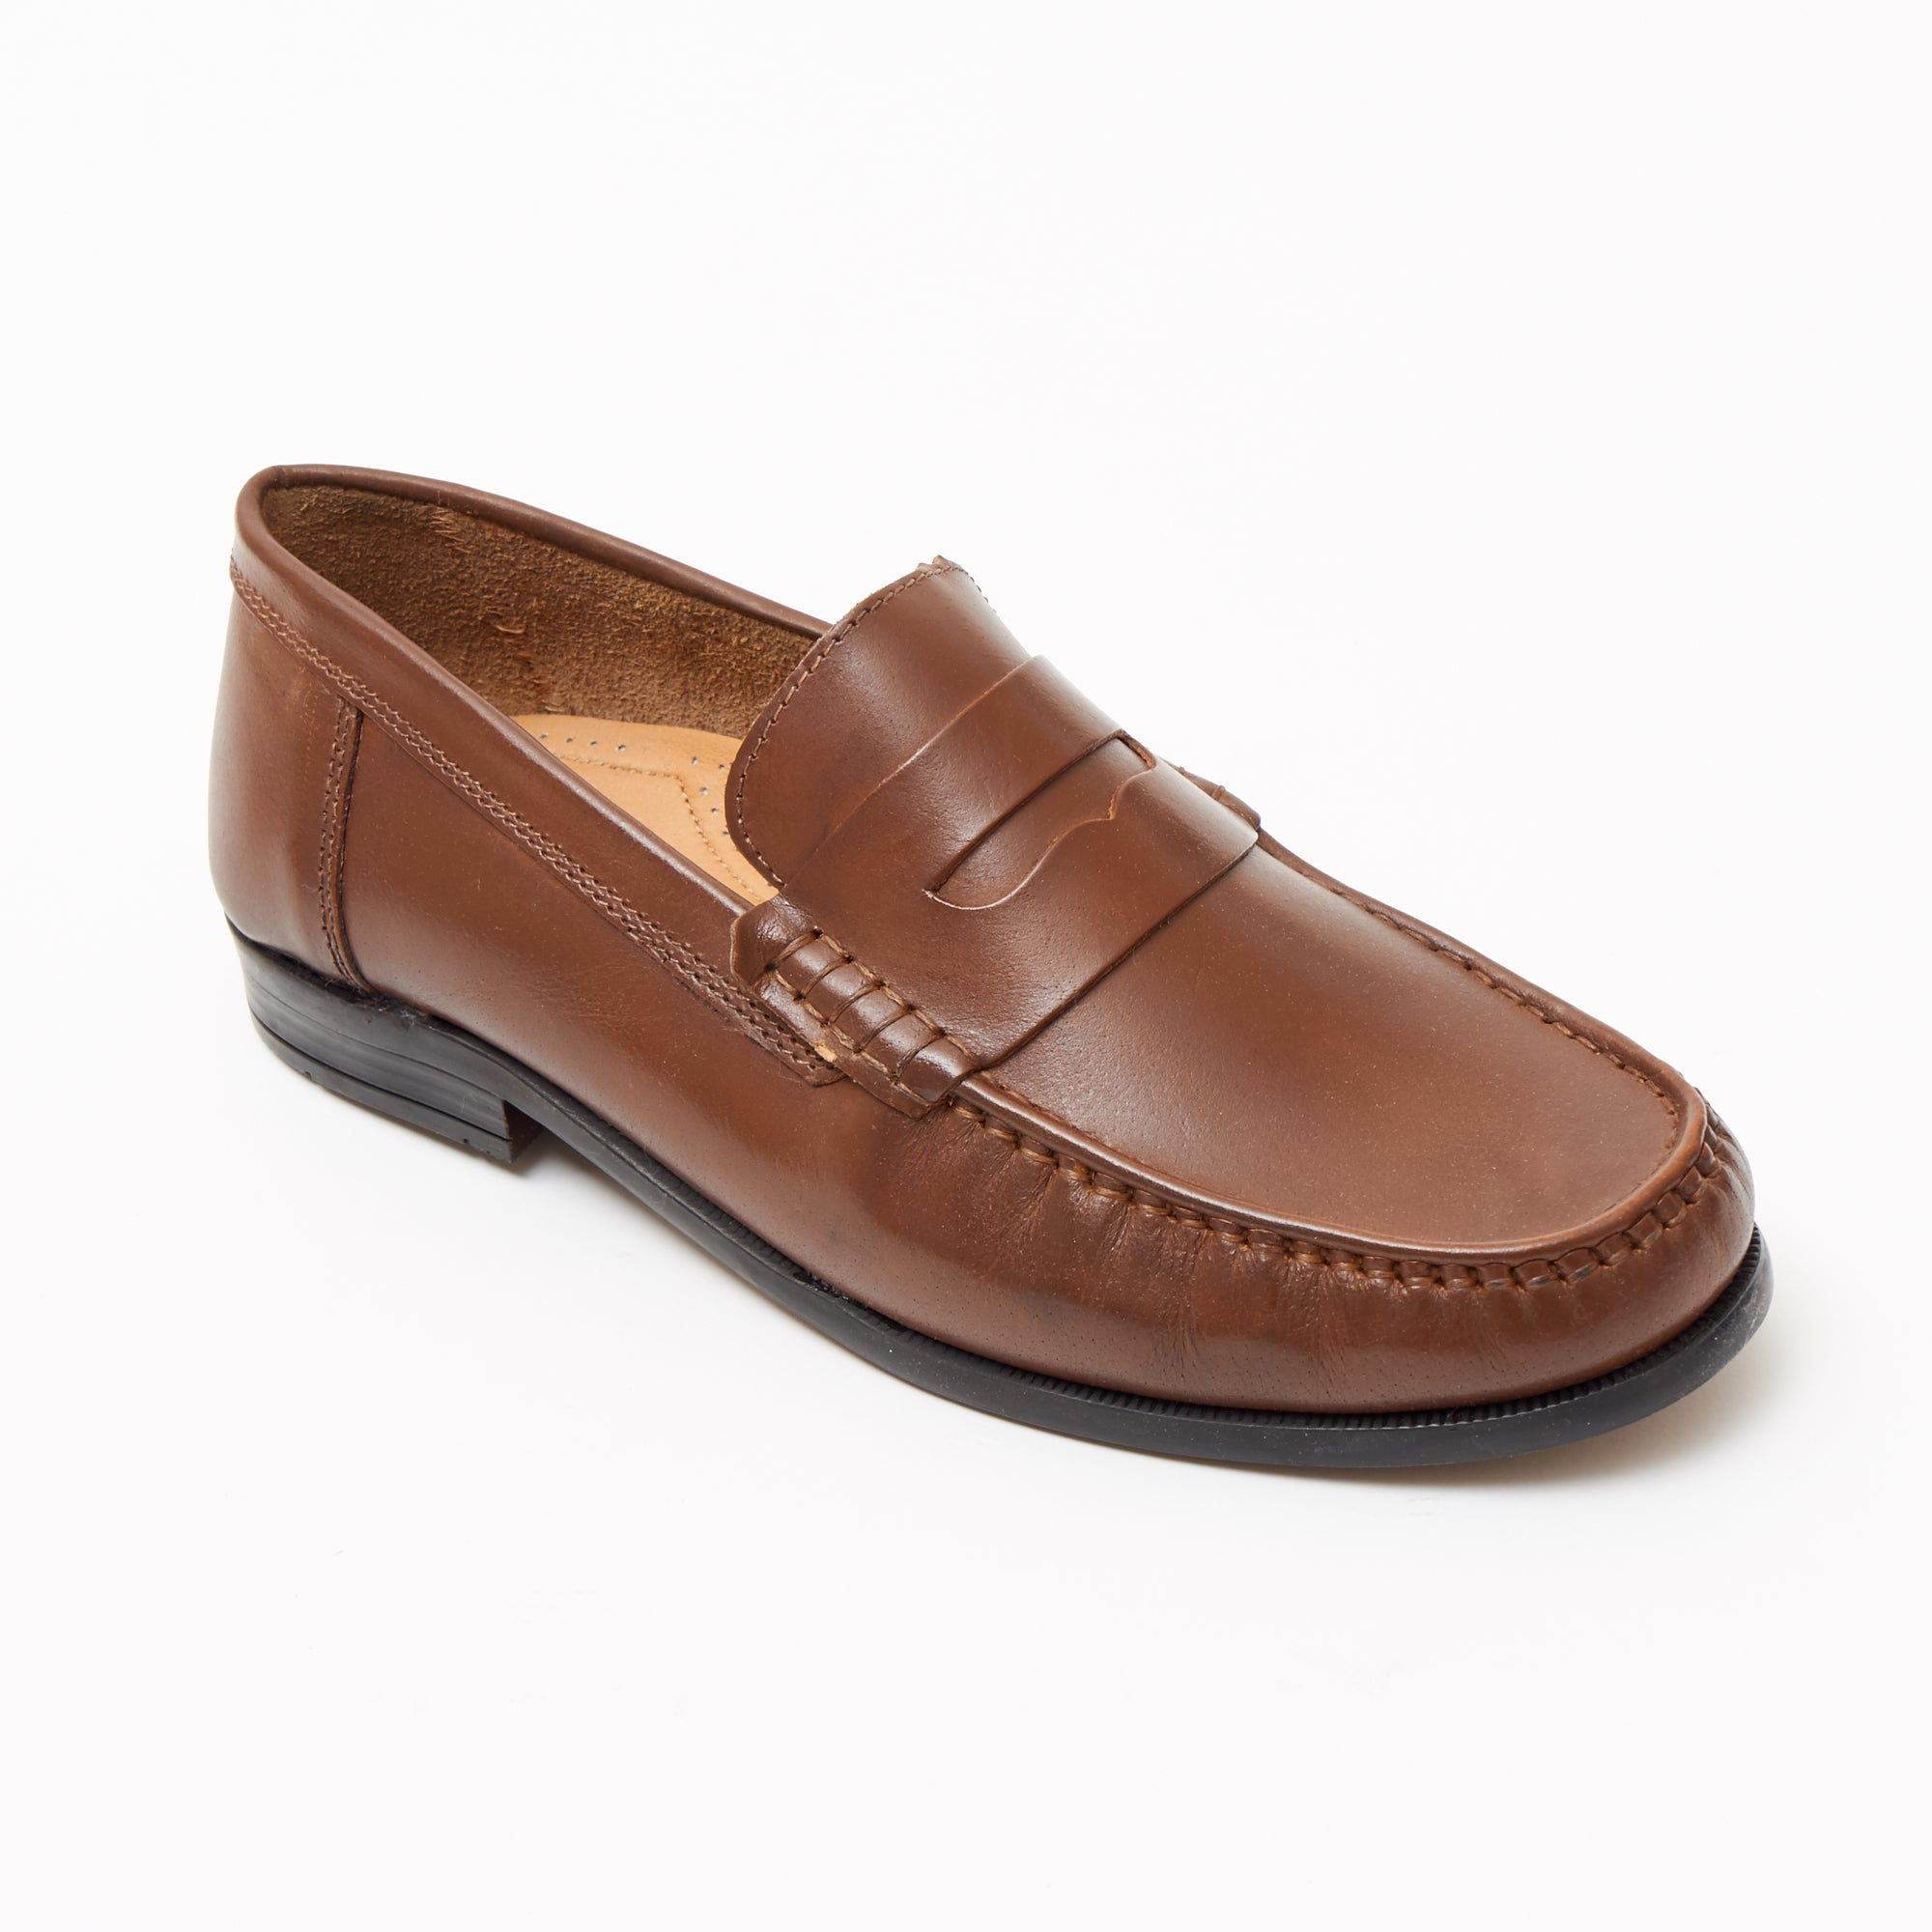 Mens Leather Casual Shoes - 2812_Tan Buff